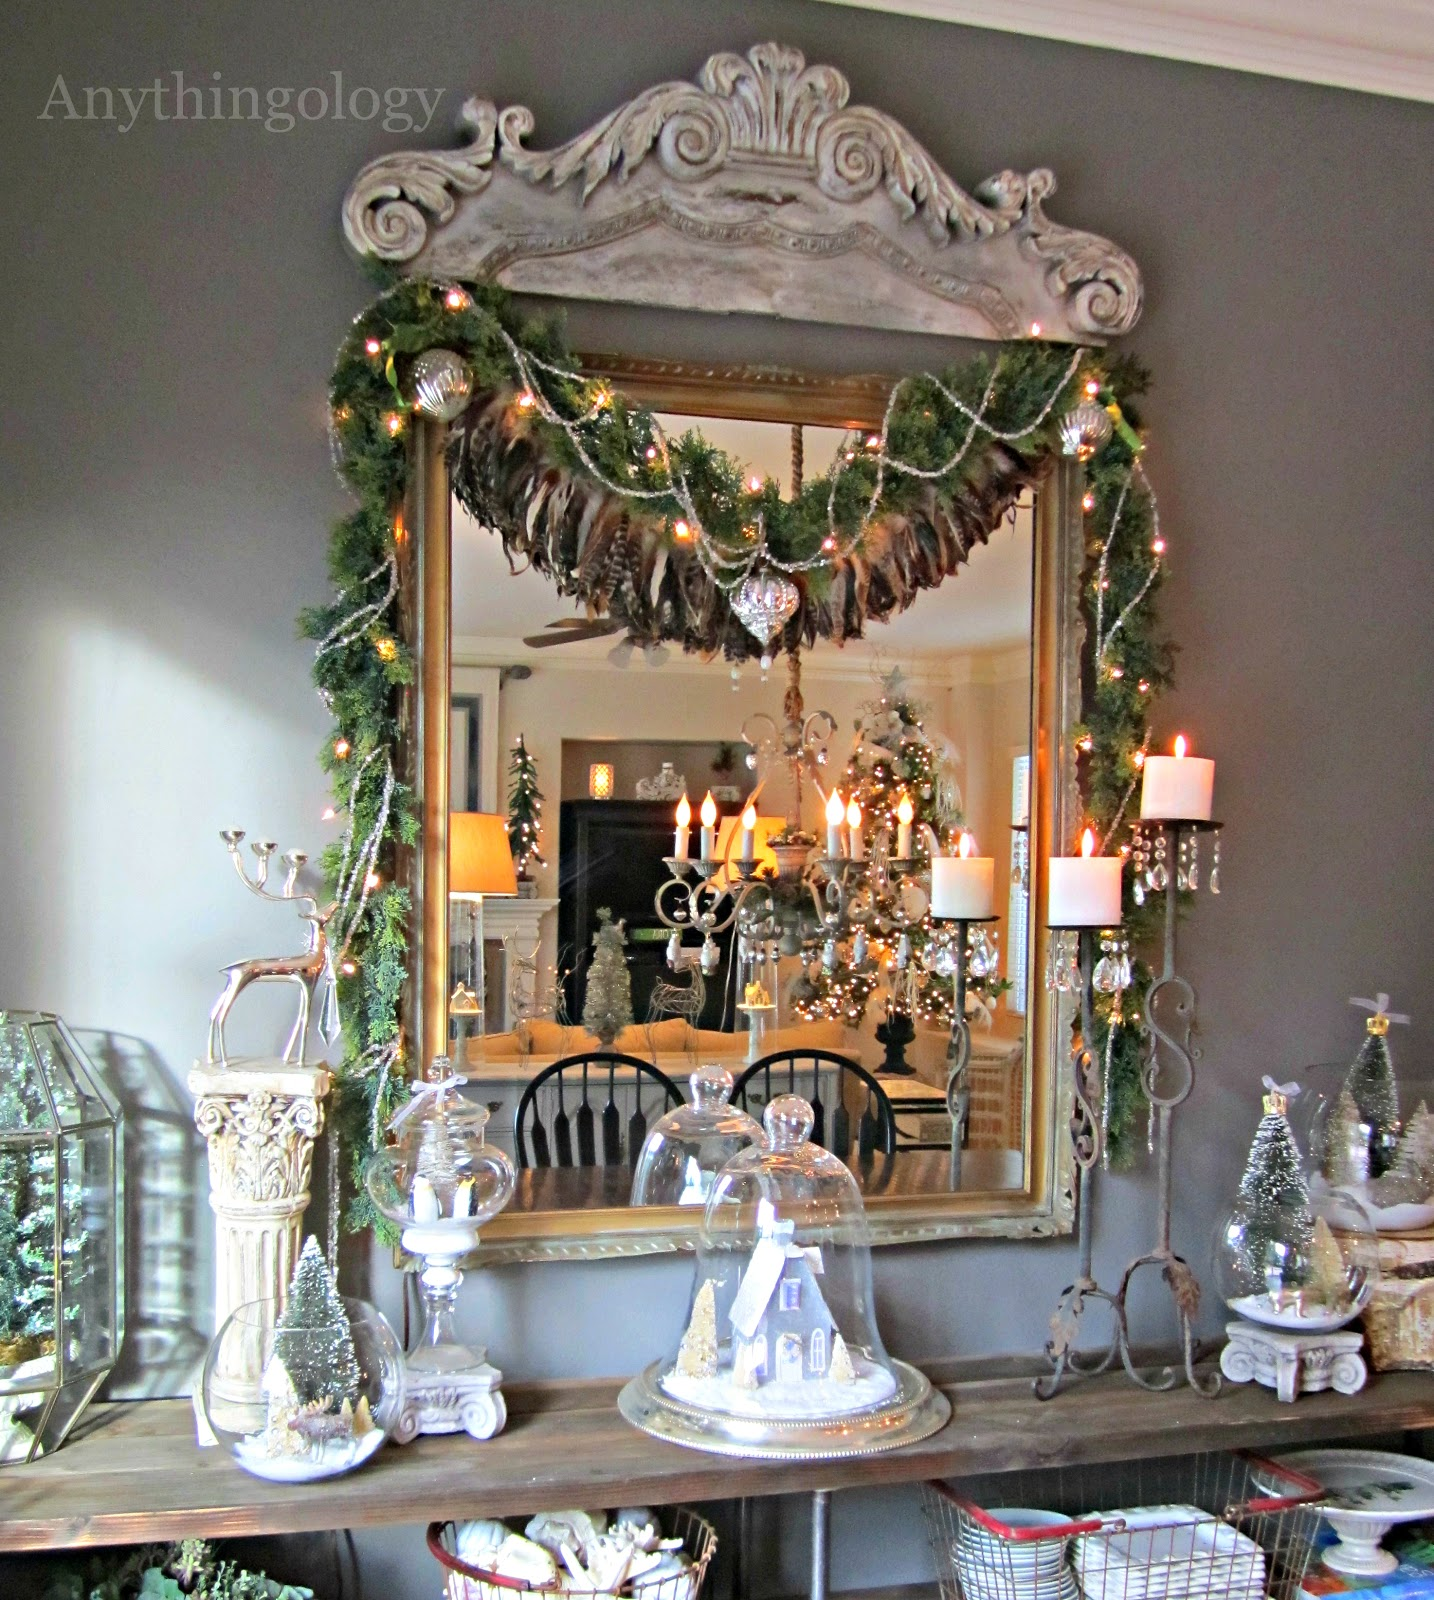 Vintage The chandelier is blinged out with faux greenery and Christmas owls